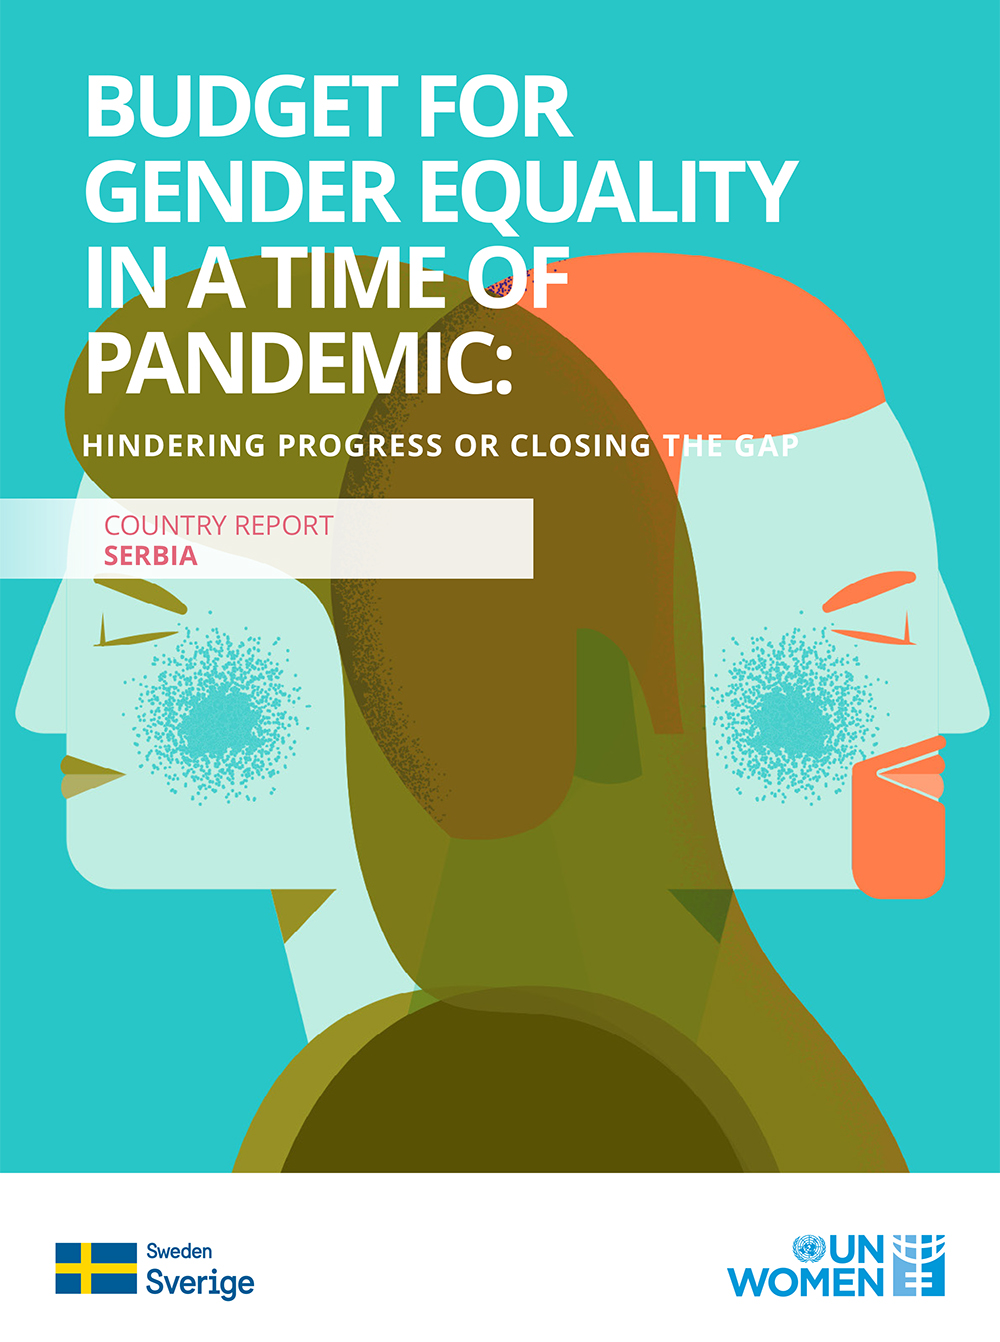 Budget for gender equality in a time of pandemic: hindering progress or closing the gap